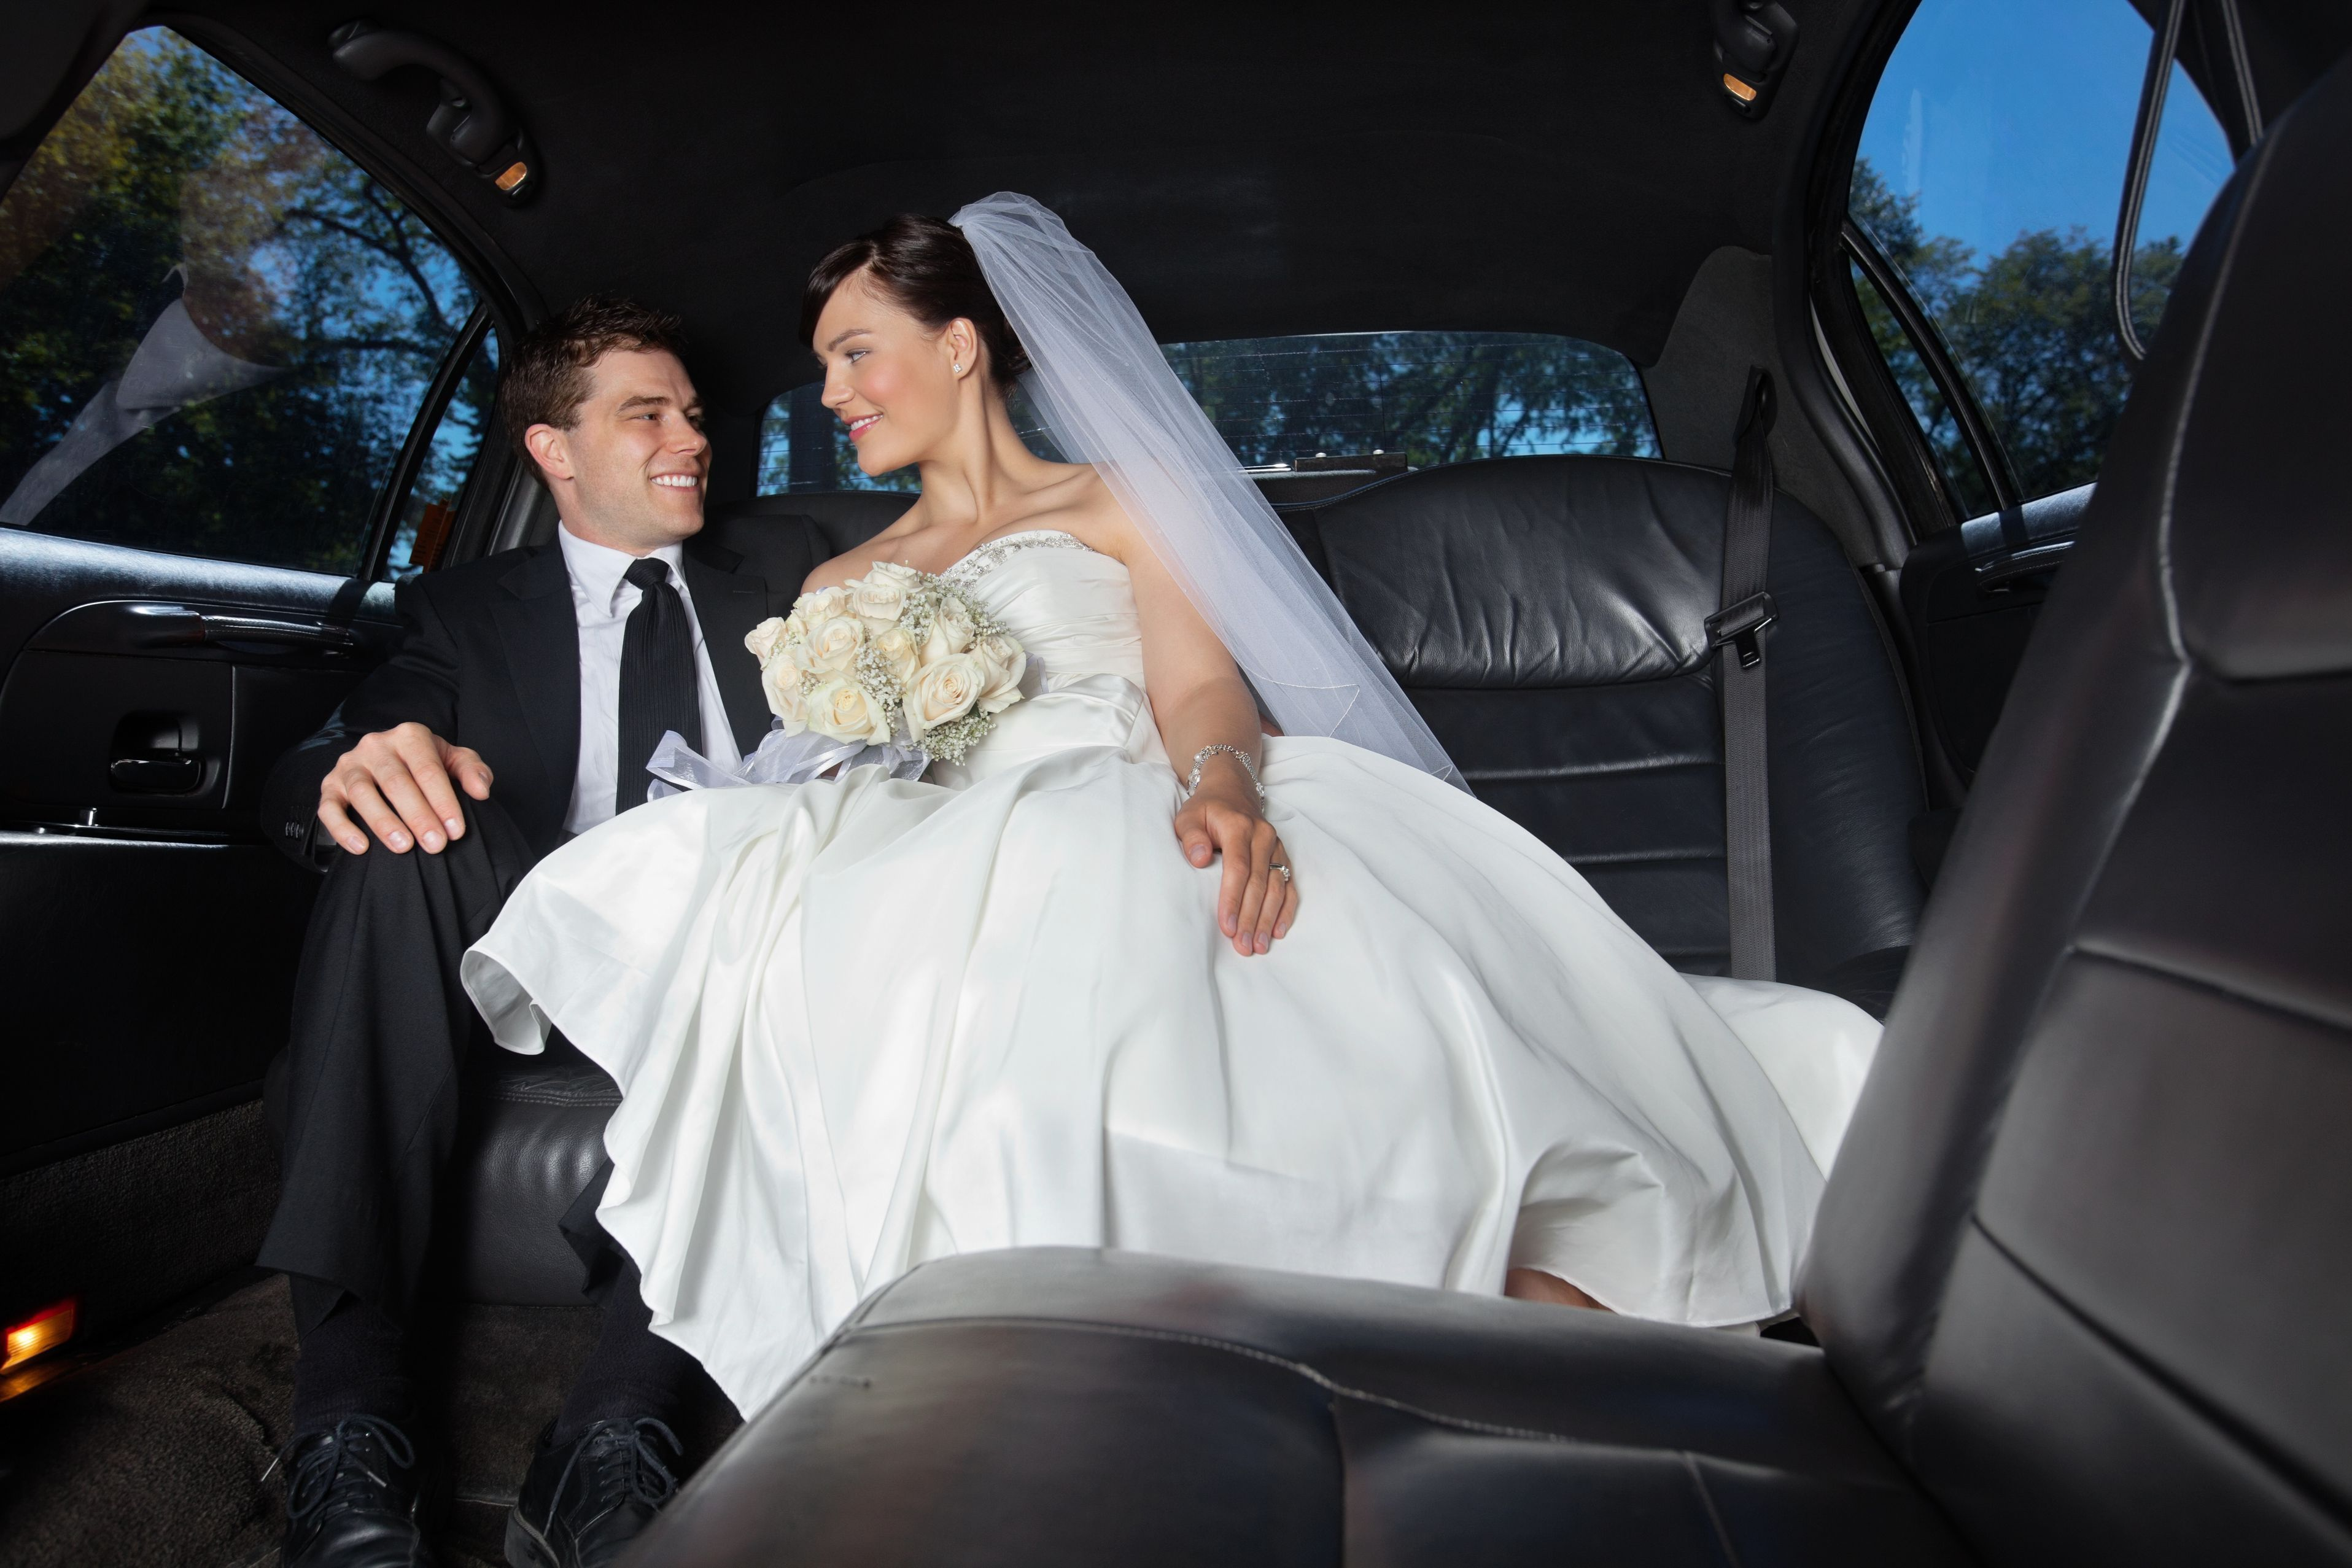 Newlywed bride and groom in chauffeur driven cars